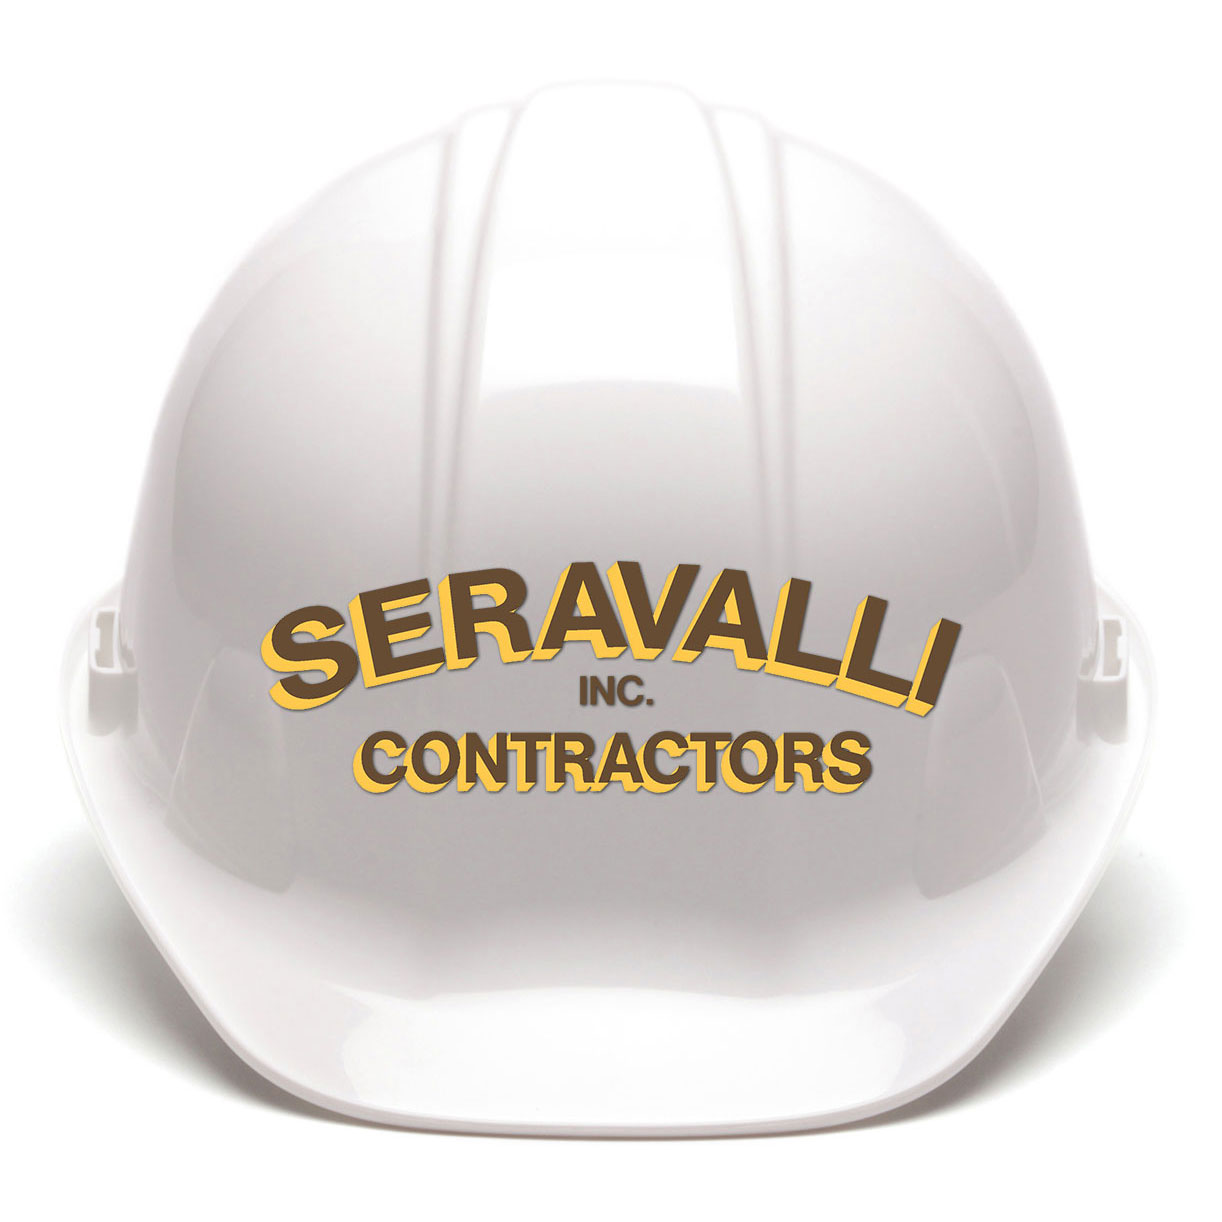 Seravalli Inc. General Contractors Philadelphia, PA